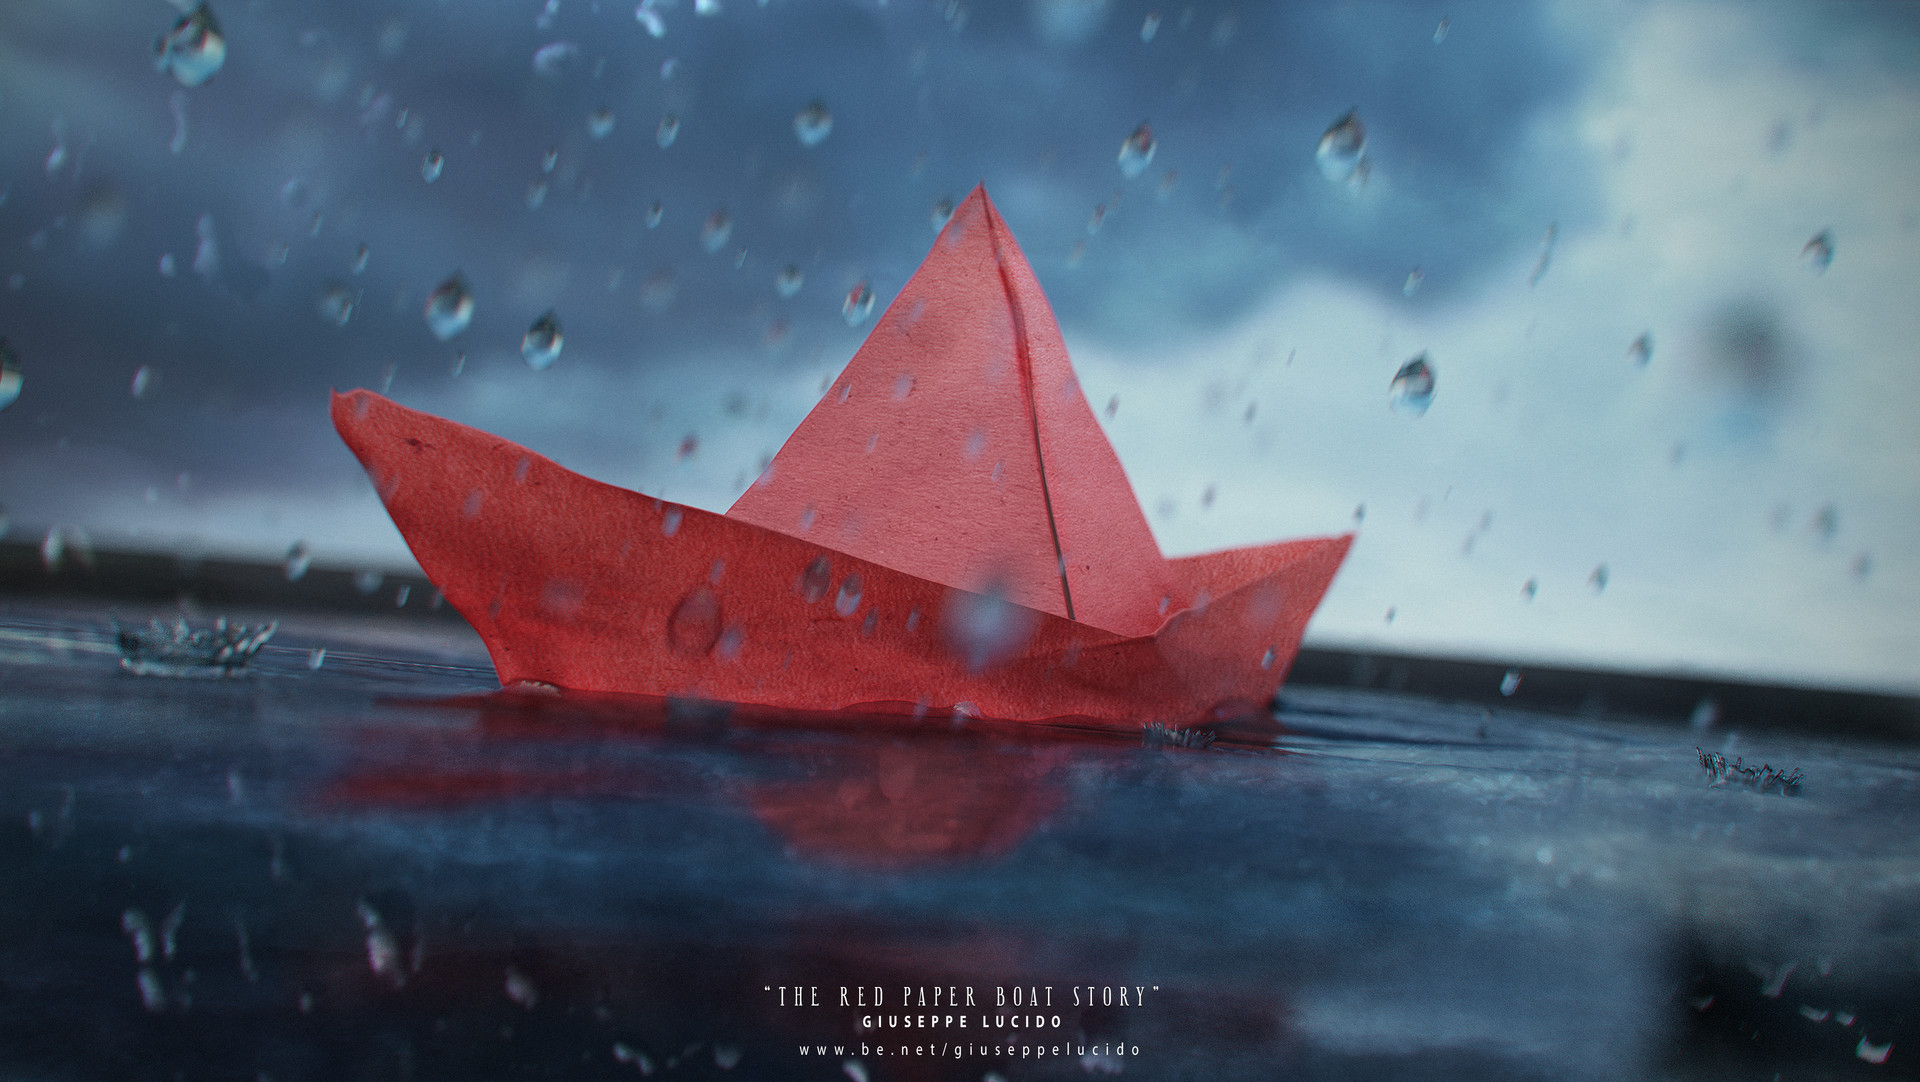 Giuseppe lucido theredpaperboatstory g lucido defcclarge 2